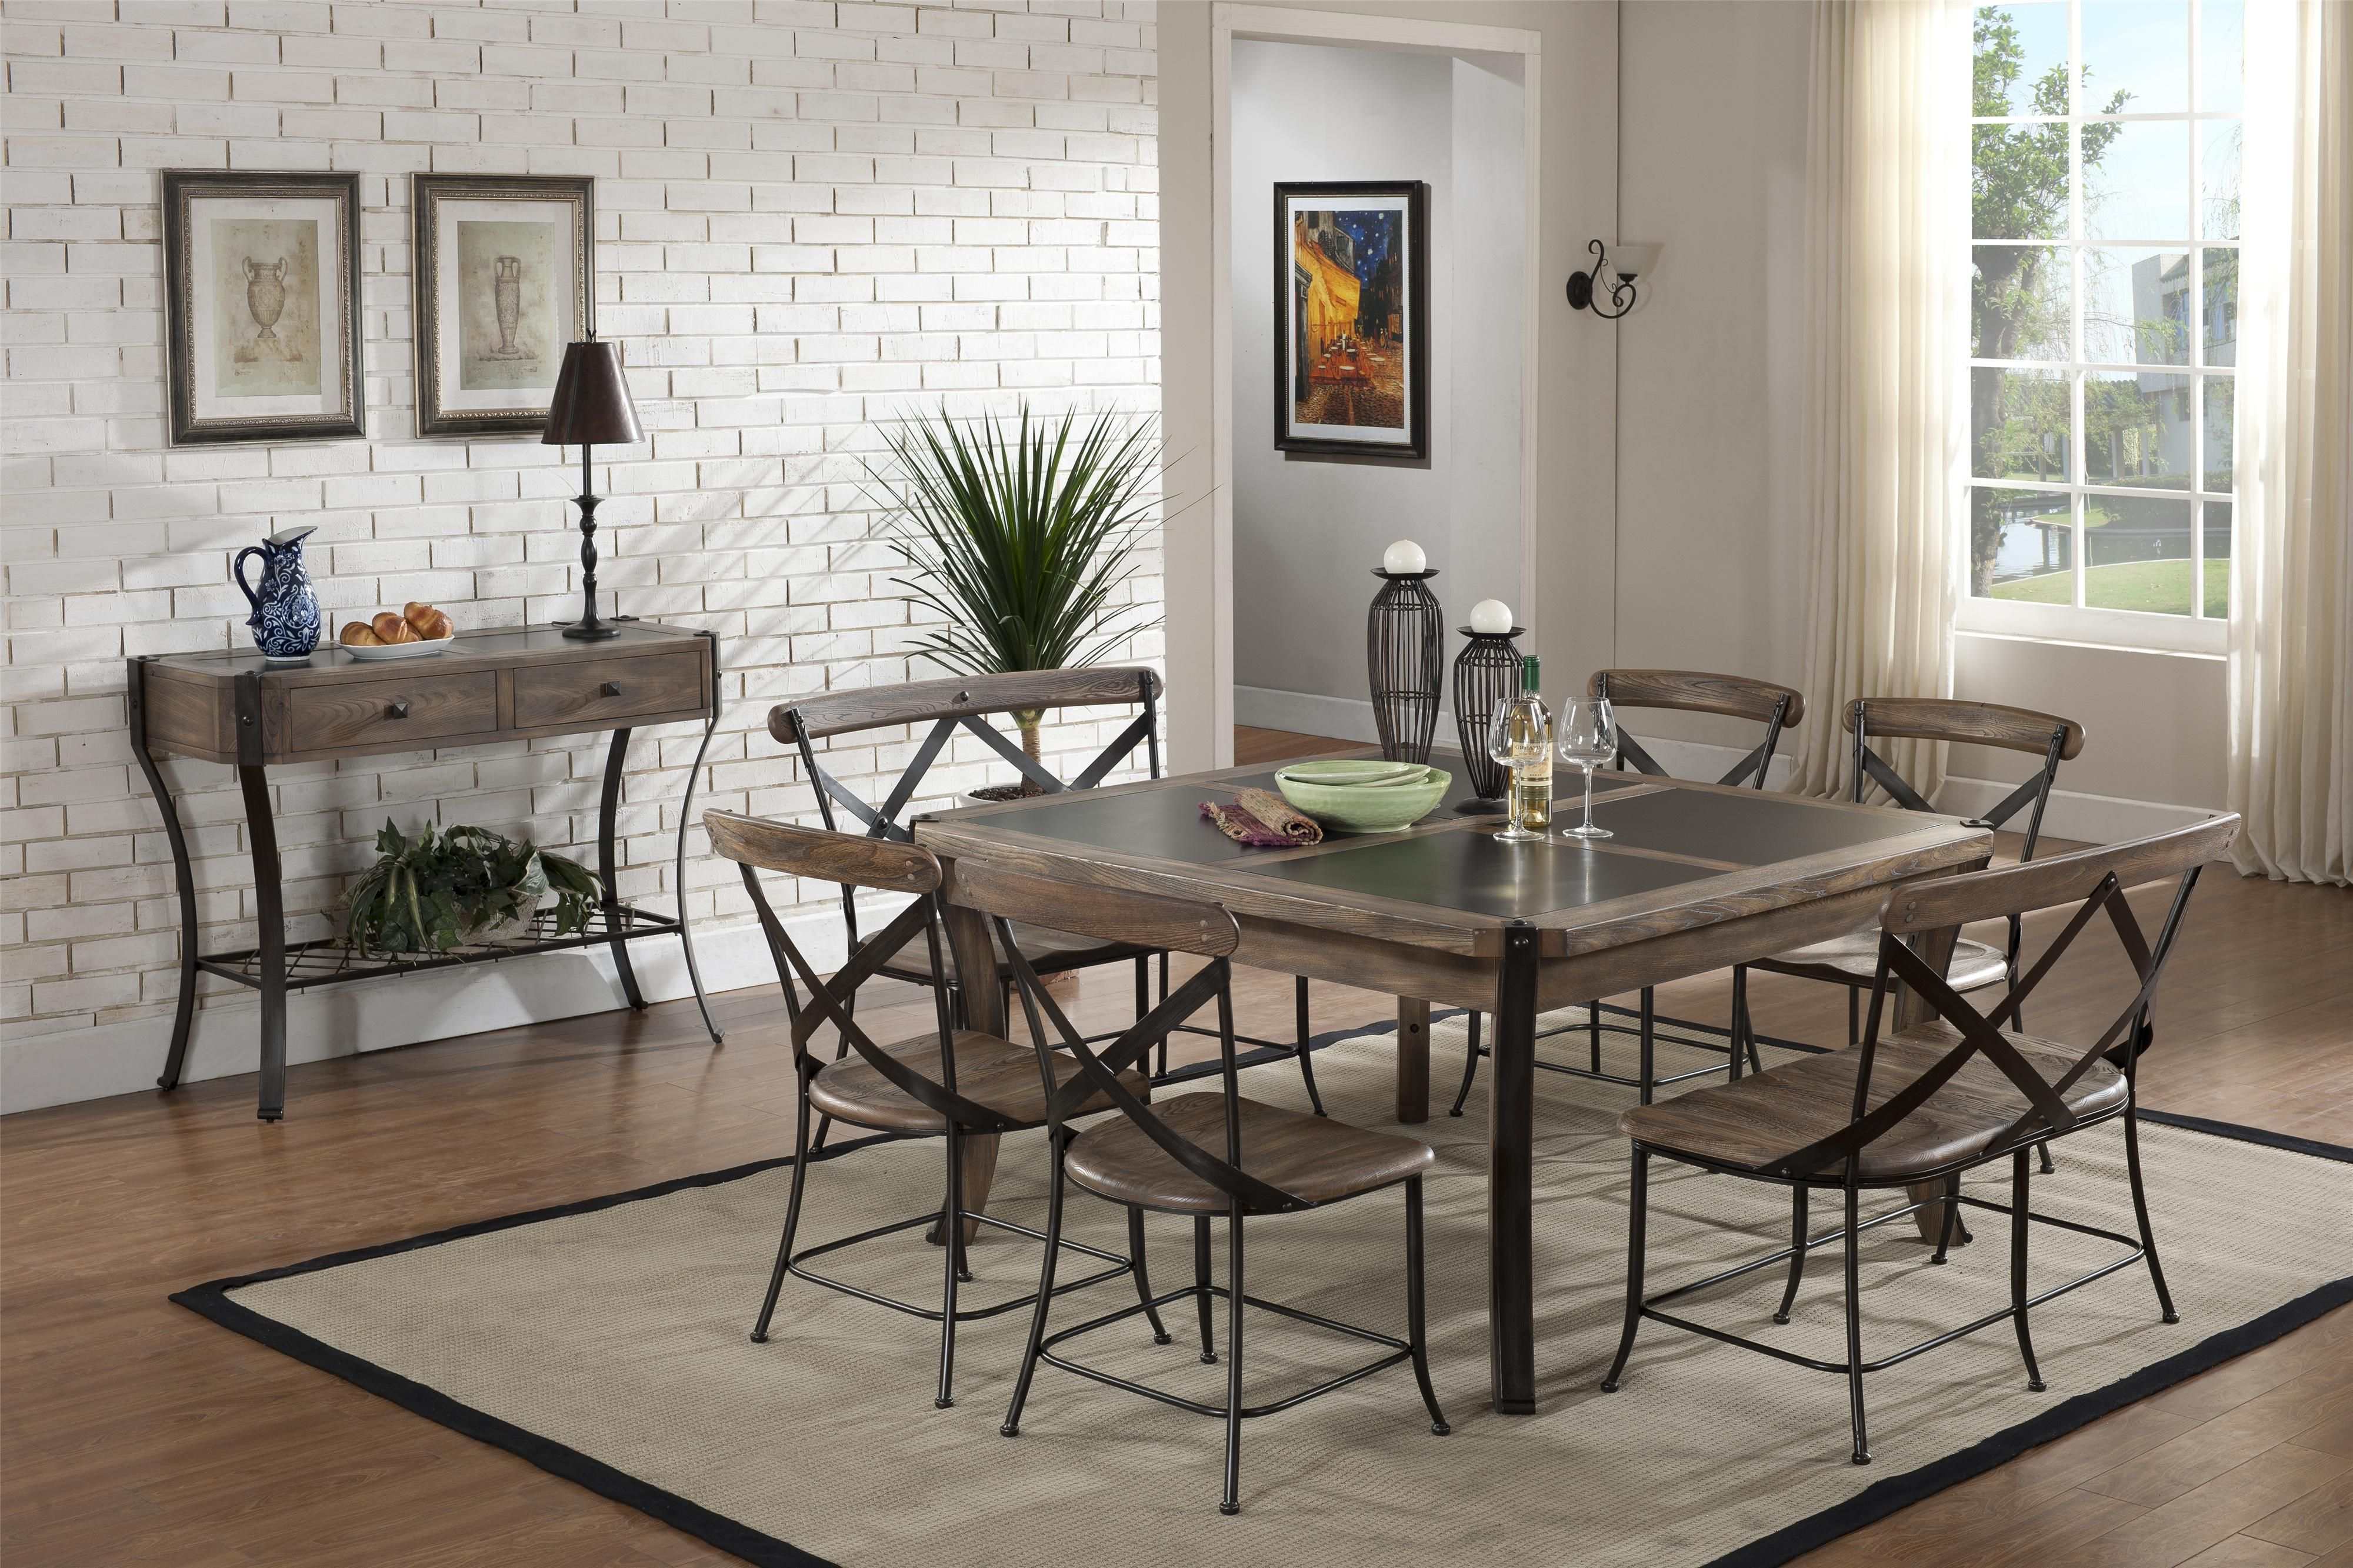 Lancaster 7 Piece Dining Set By Emerald With Images